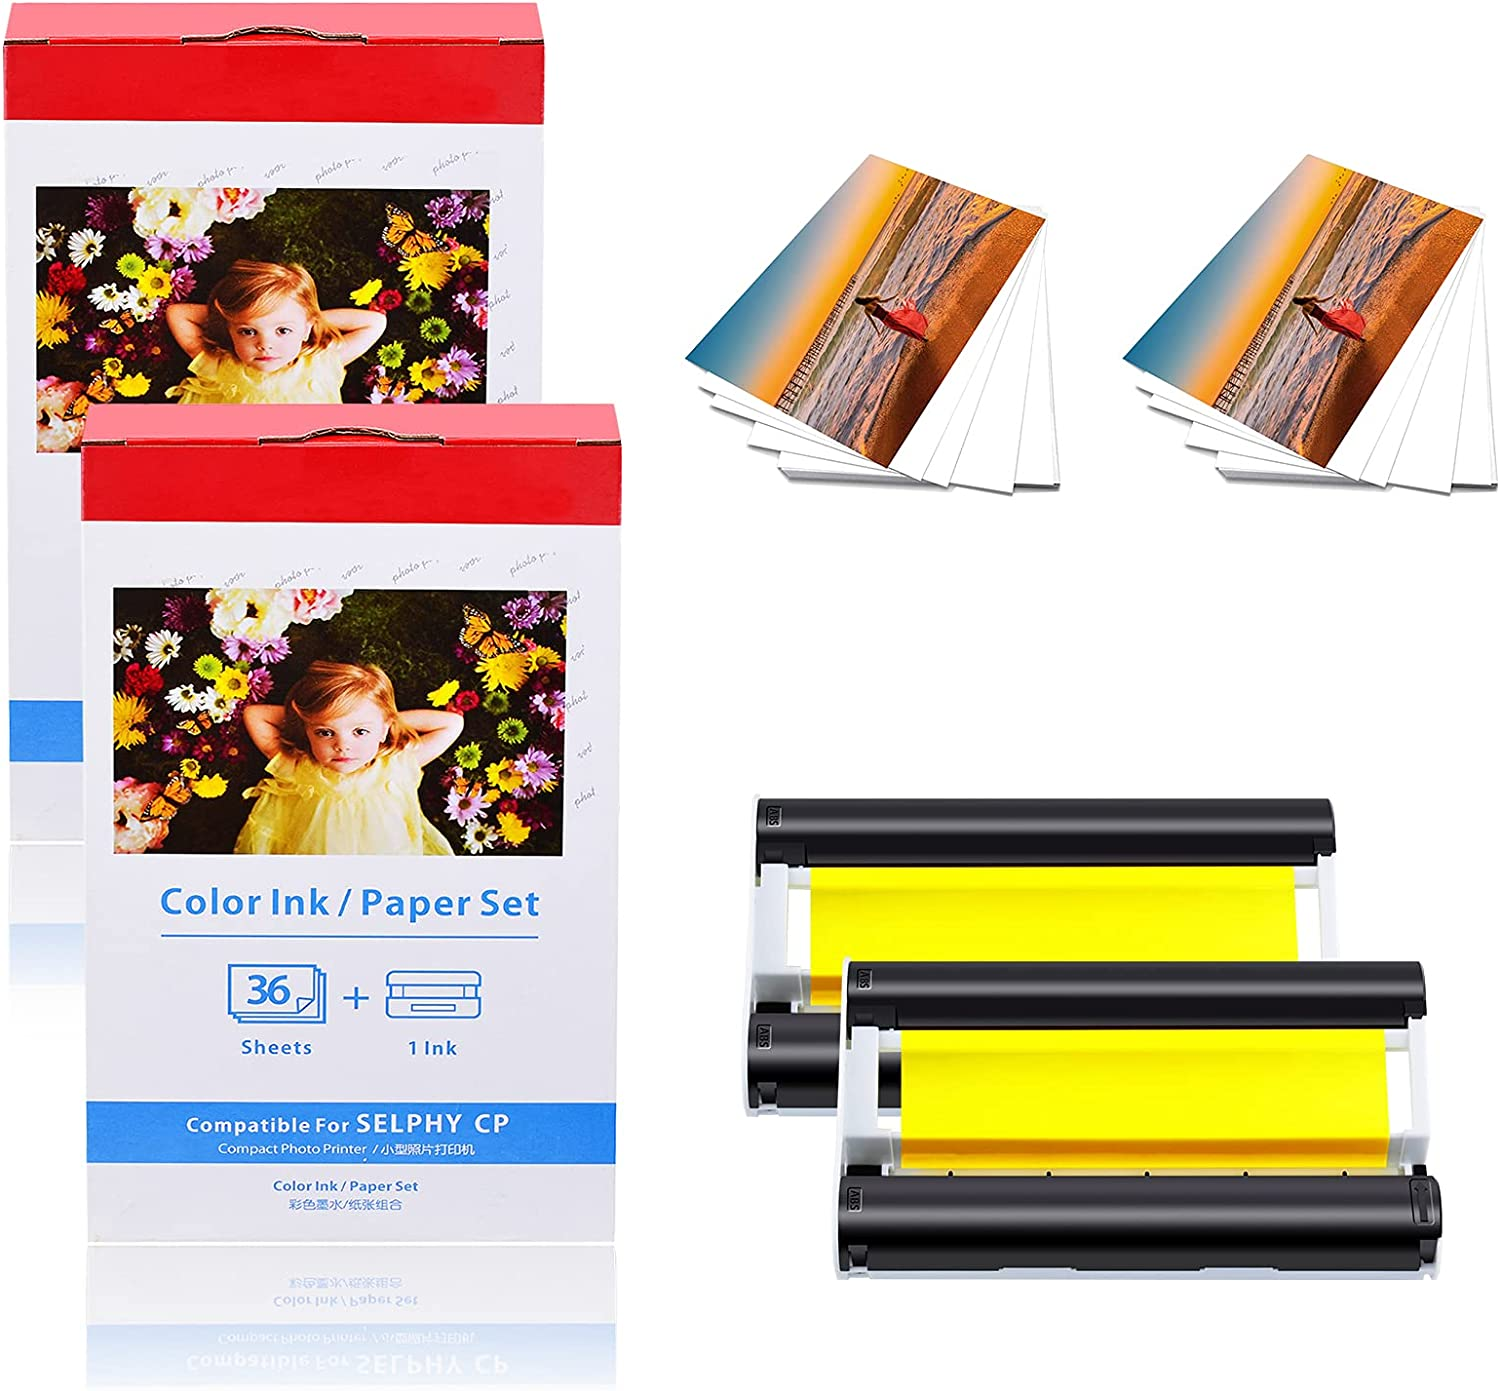 KCMYTONER Special price for a limited time Popular product 2 Pack Compatible for Canon One Ink Color KP36 KP-36IN